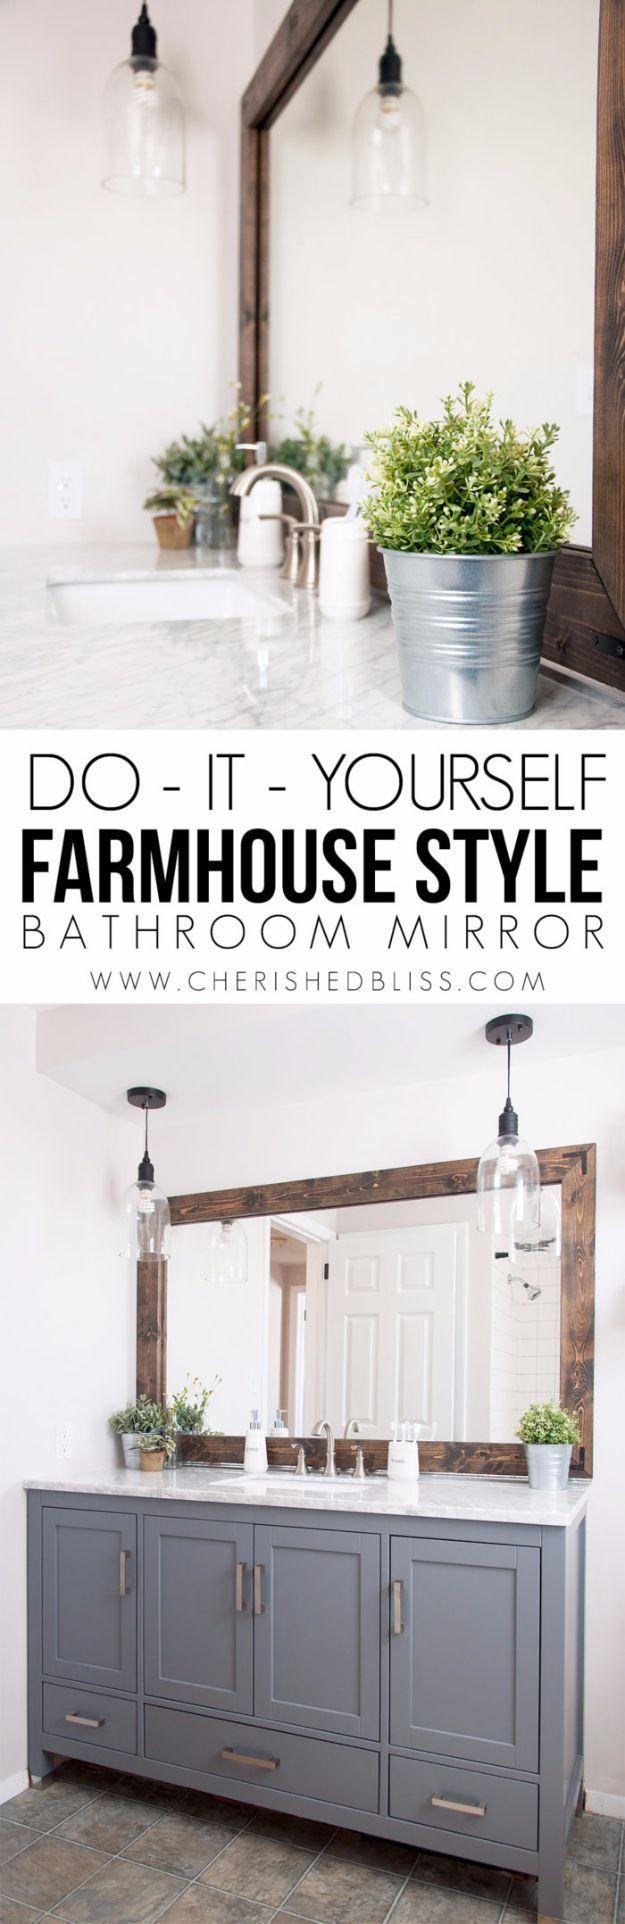 41 More Farmhouse Decor Ideas - DIY Joy